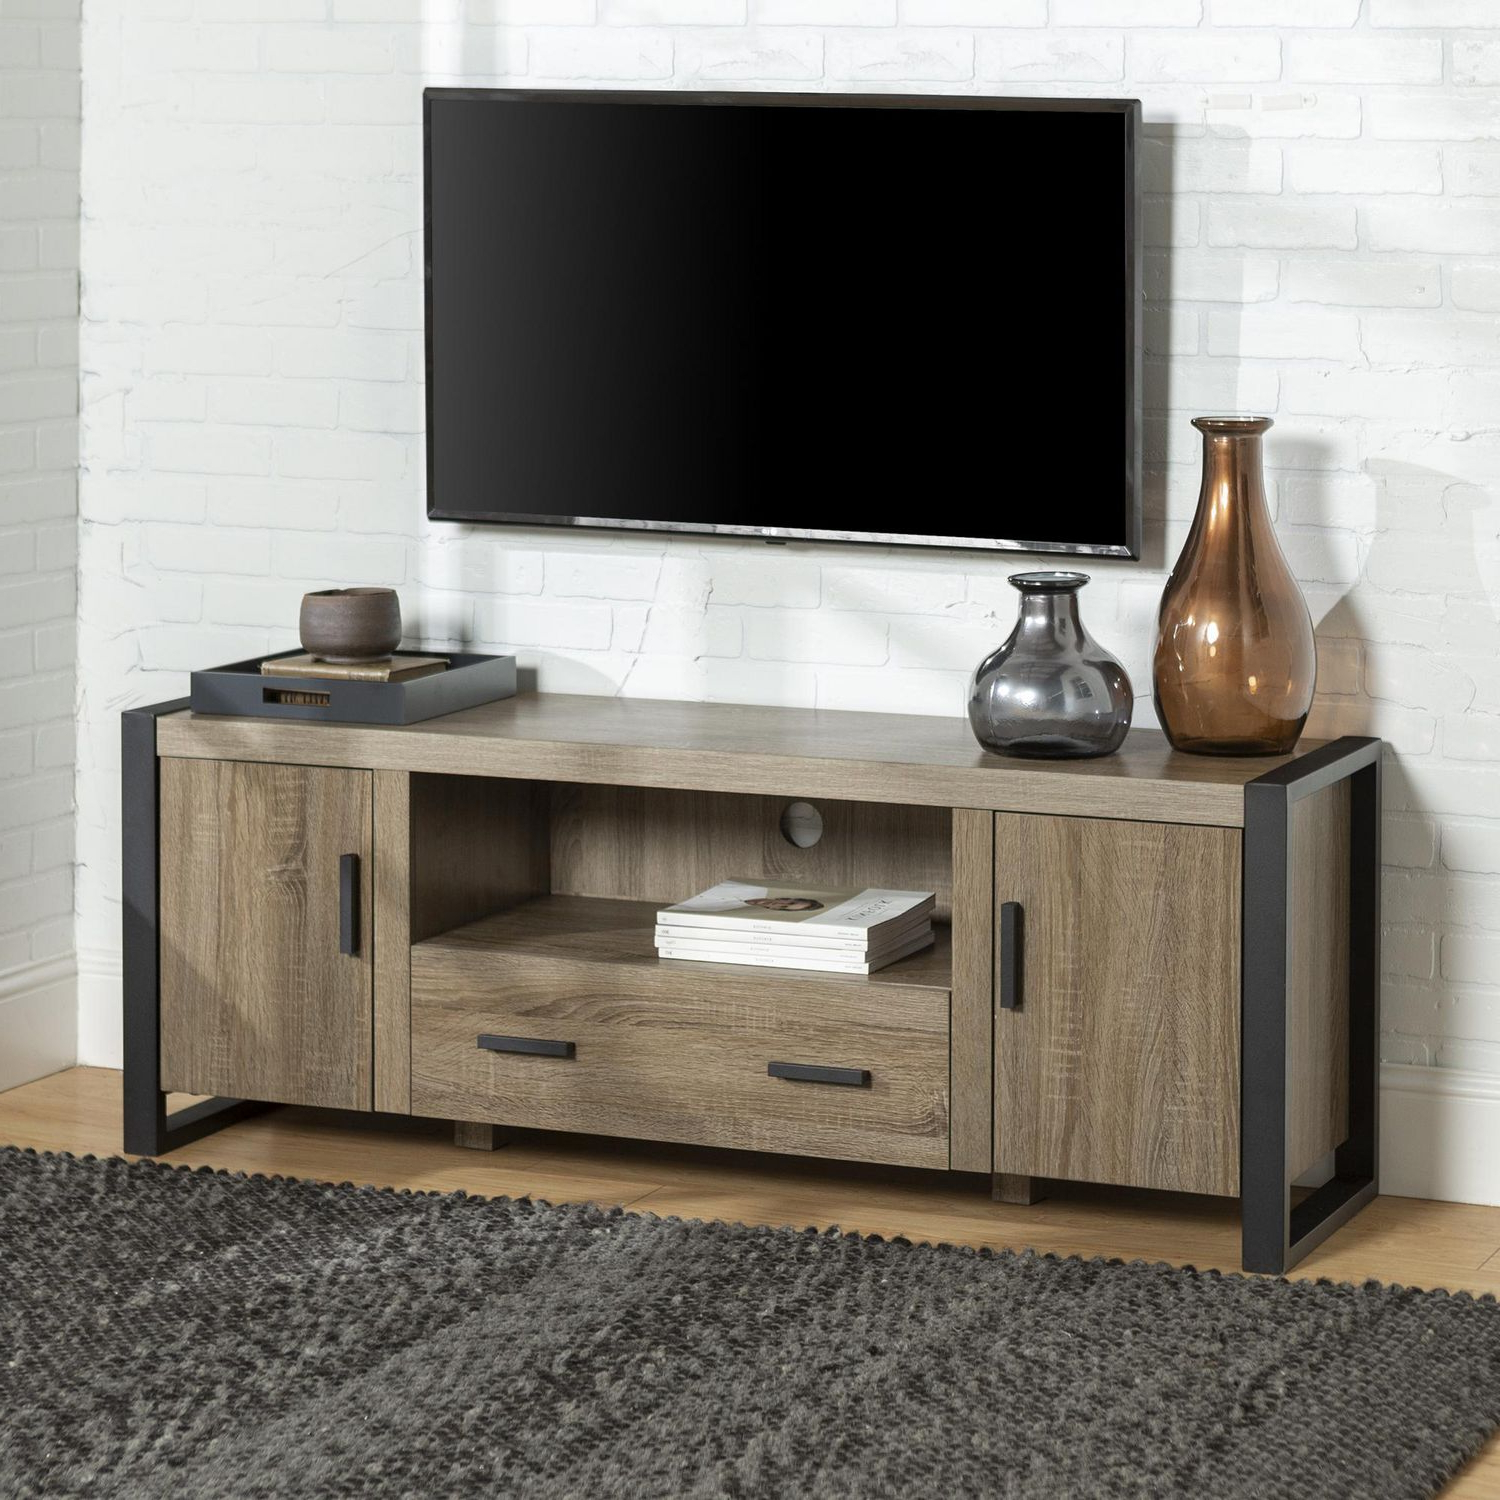 Tv Stands With Led Lights In Multiple Finishes Pertaining To Favorite Manor Park Modern Industrial Tv Stand – Multiple Finishes (View 4 of 10)